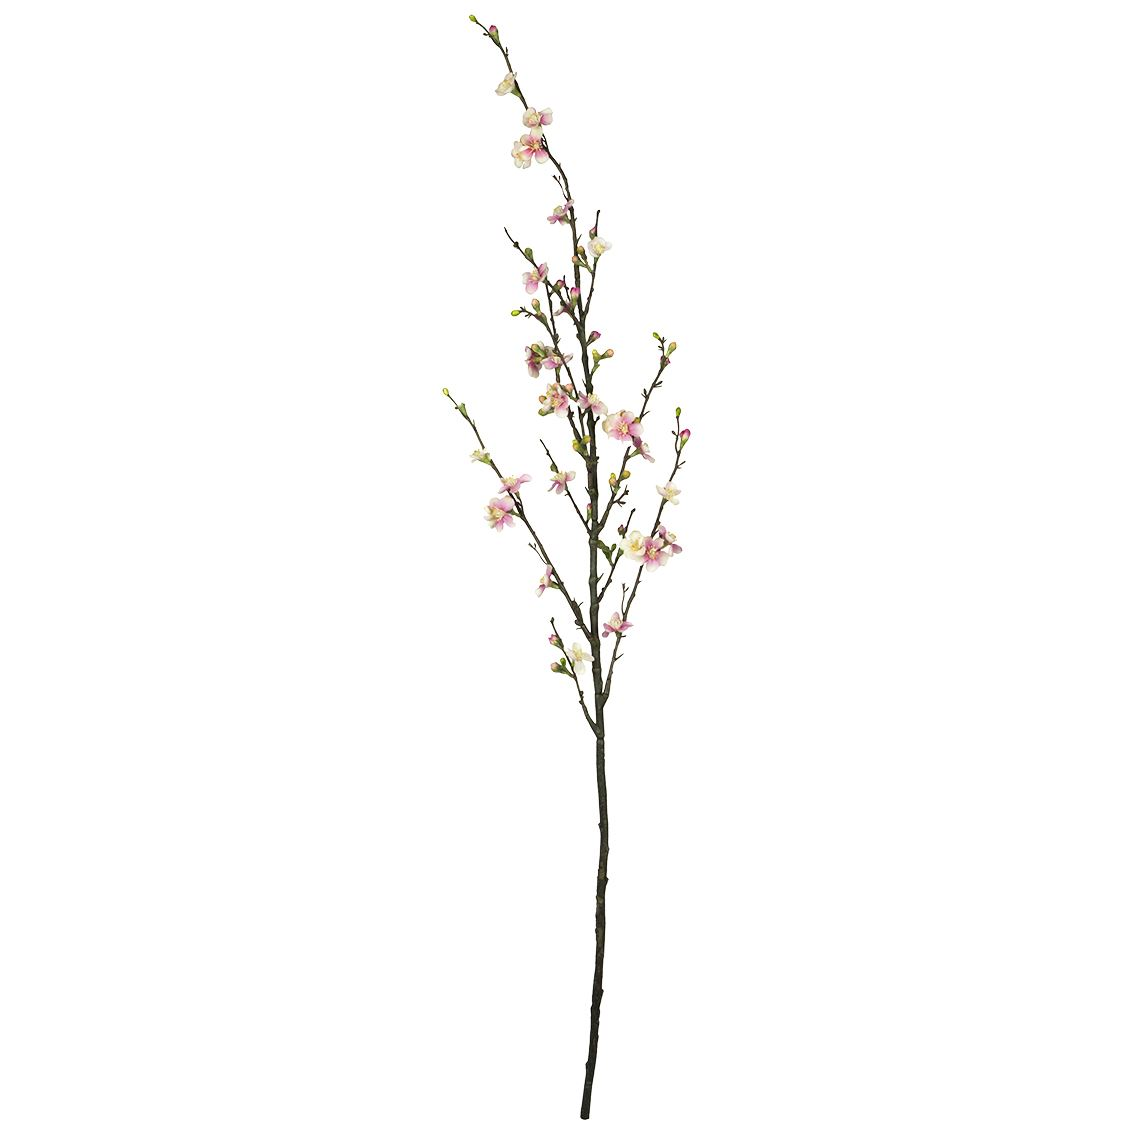 Quince Blossom Stem Size W 36cm x D 36cm x H 130cm in Light Pink Plastic/Fabric/Wire Freedom by Freedom, a Plants for sale on Style Sourcebook